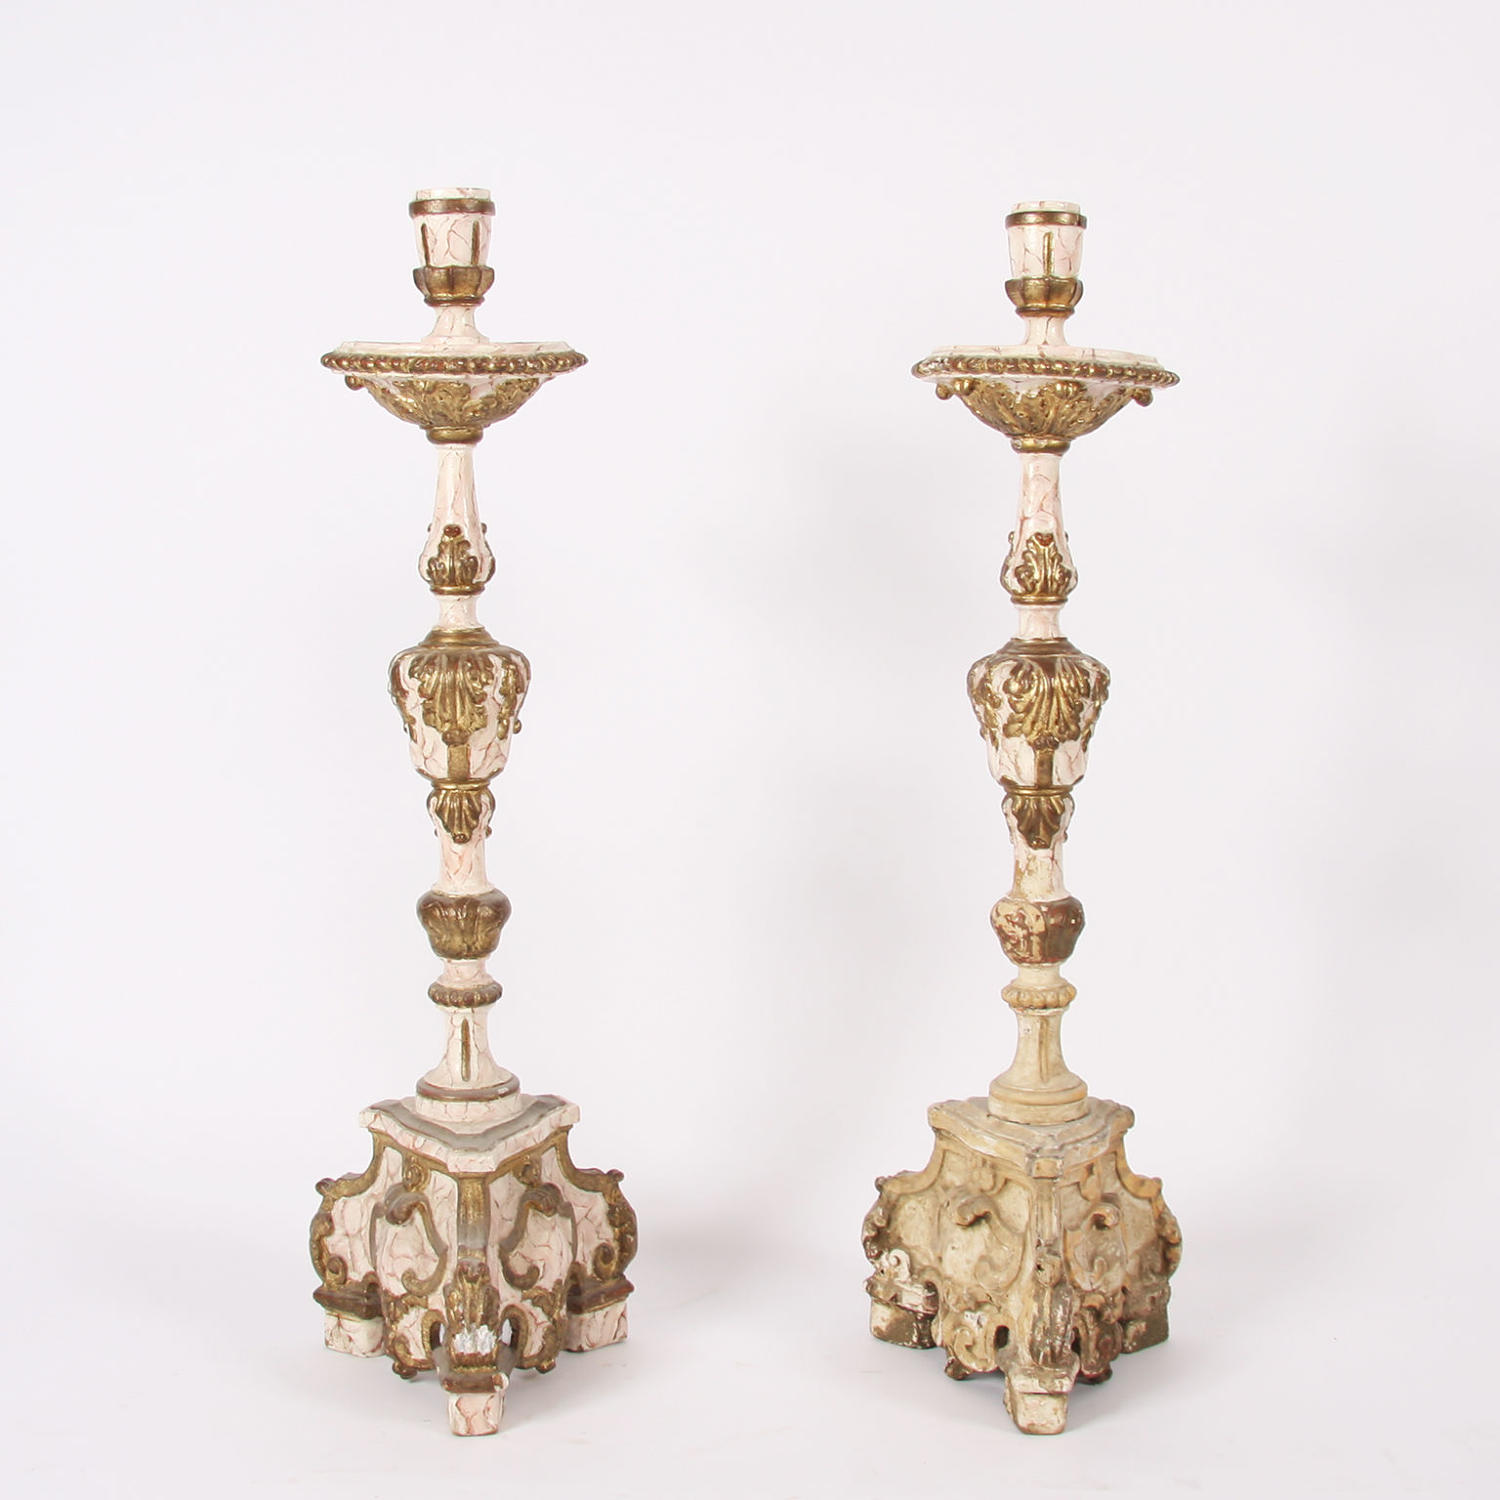 Carved Wood Cream and Gold Altar CandleSticks